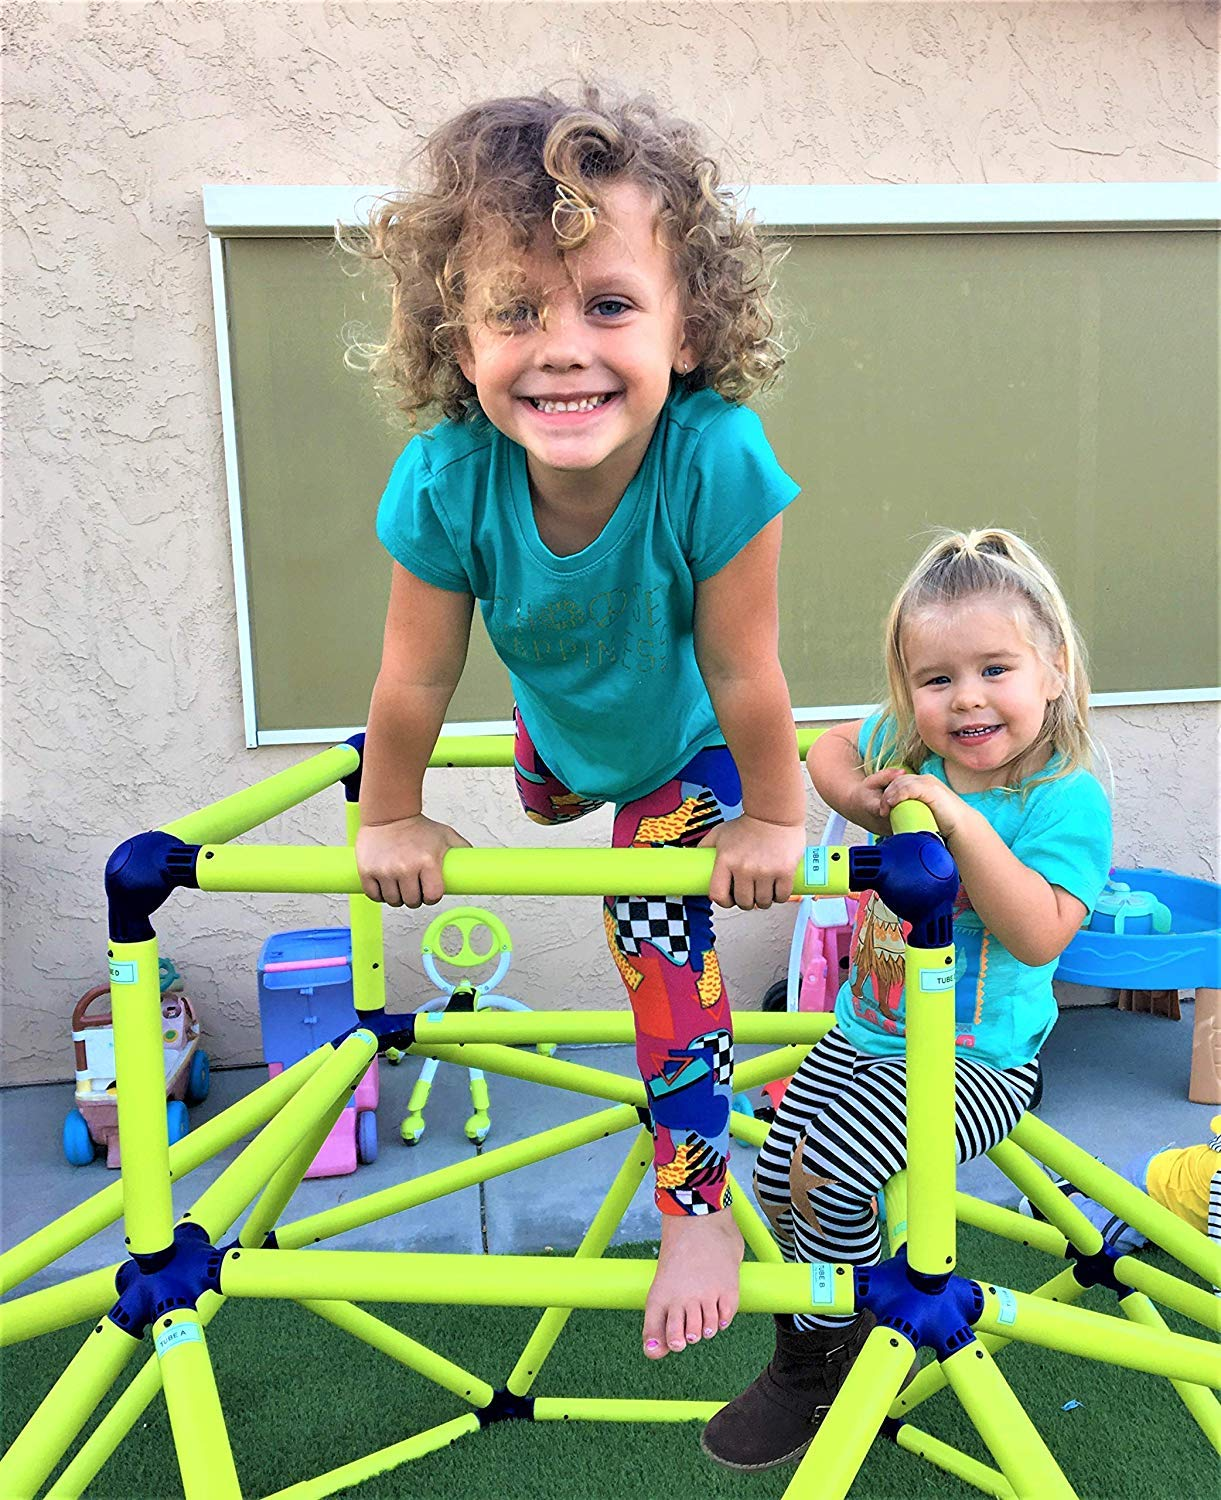 Eezy Peezy Monkey Bars Climbing Tower - Active Outdoor Fun for Kids Ages 3 to 6 Years Old, Green/Blue - TM200